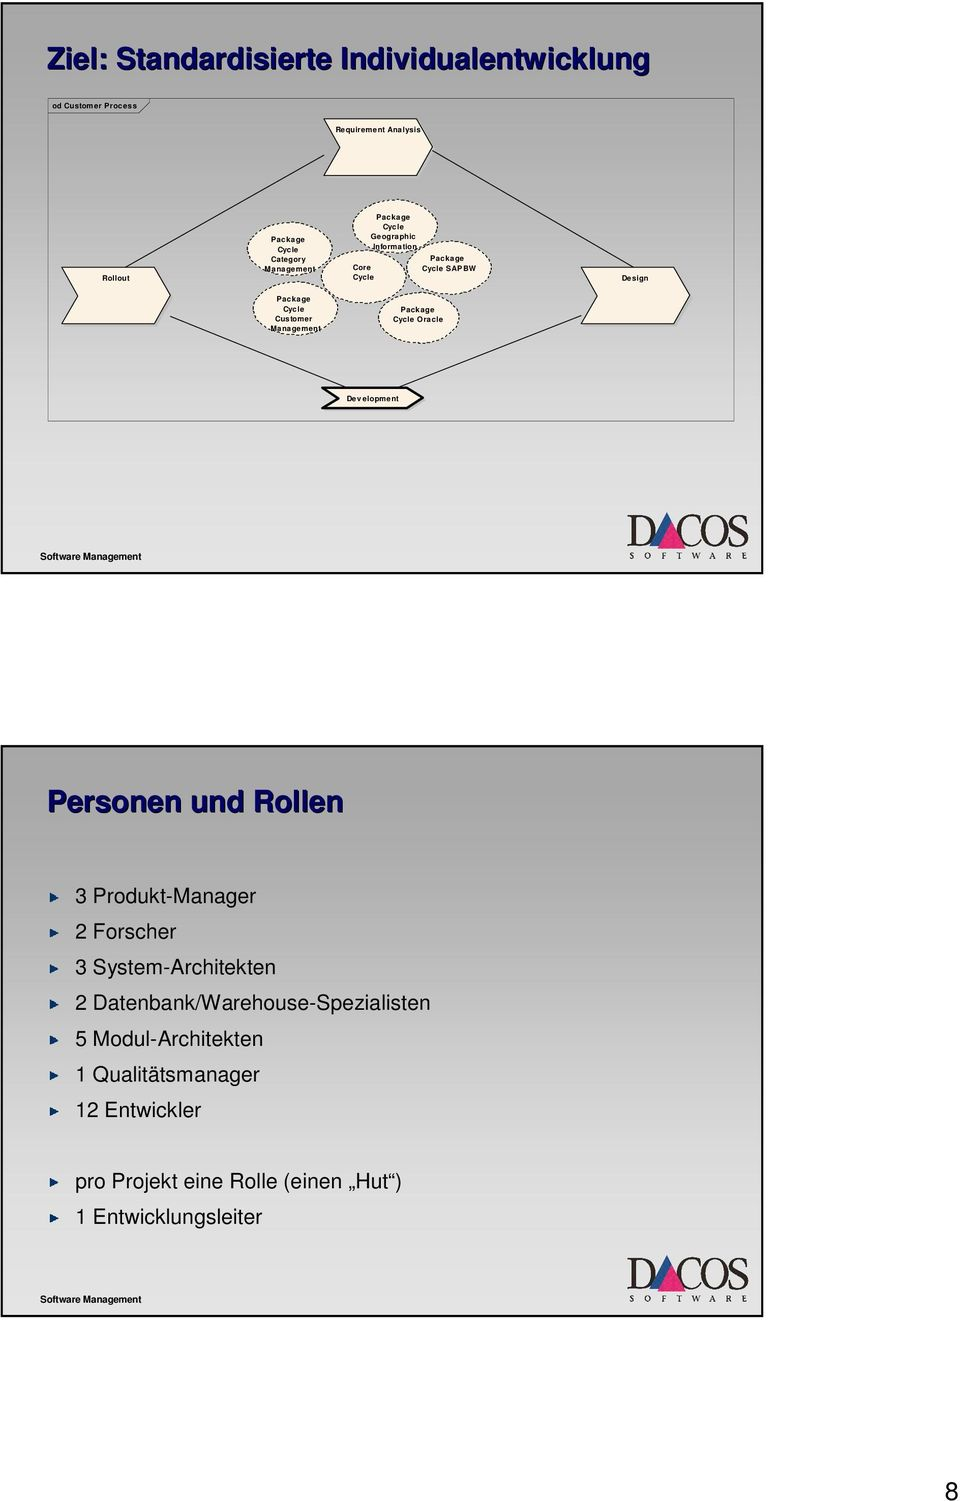 Package Cycle Oracle Dev elopment Personen und Rollen 3 Produkt-Manager 2 Forscher 3 System-Architekten 2